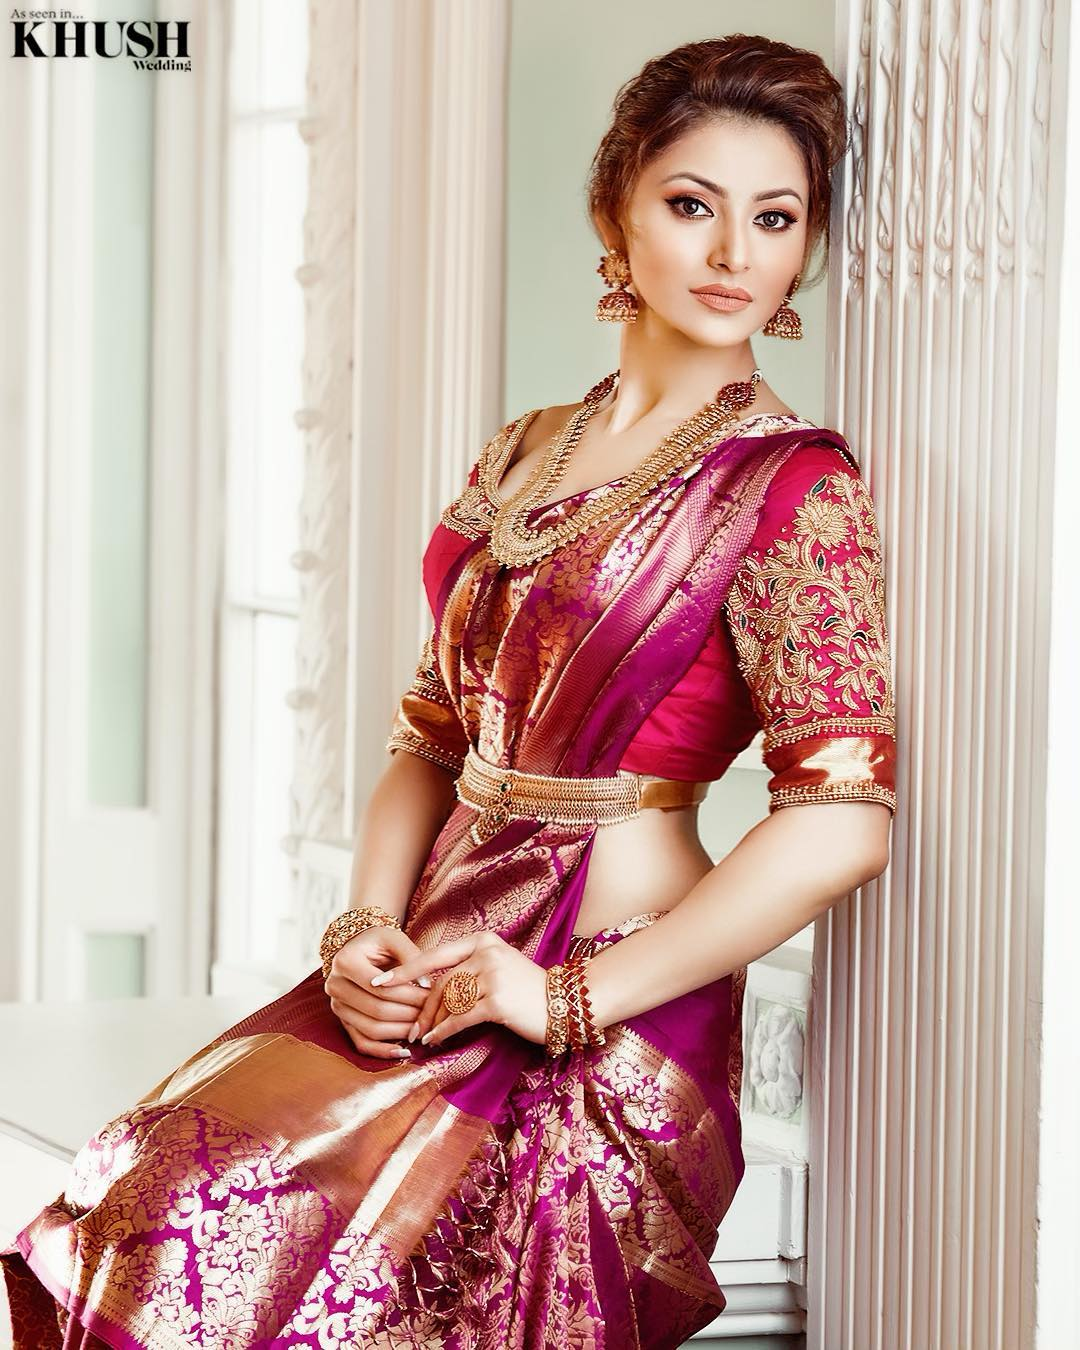 Urvashi Rautela EXCLUSIVE Photos of UK Khush Wedding Magazine